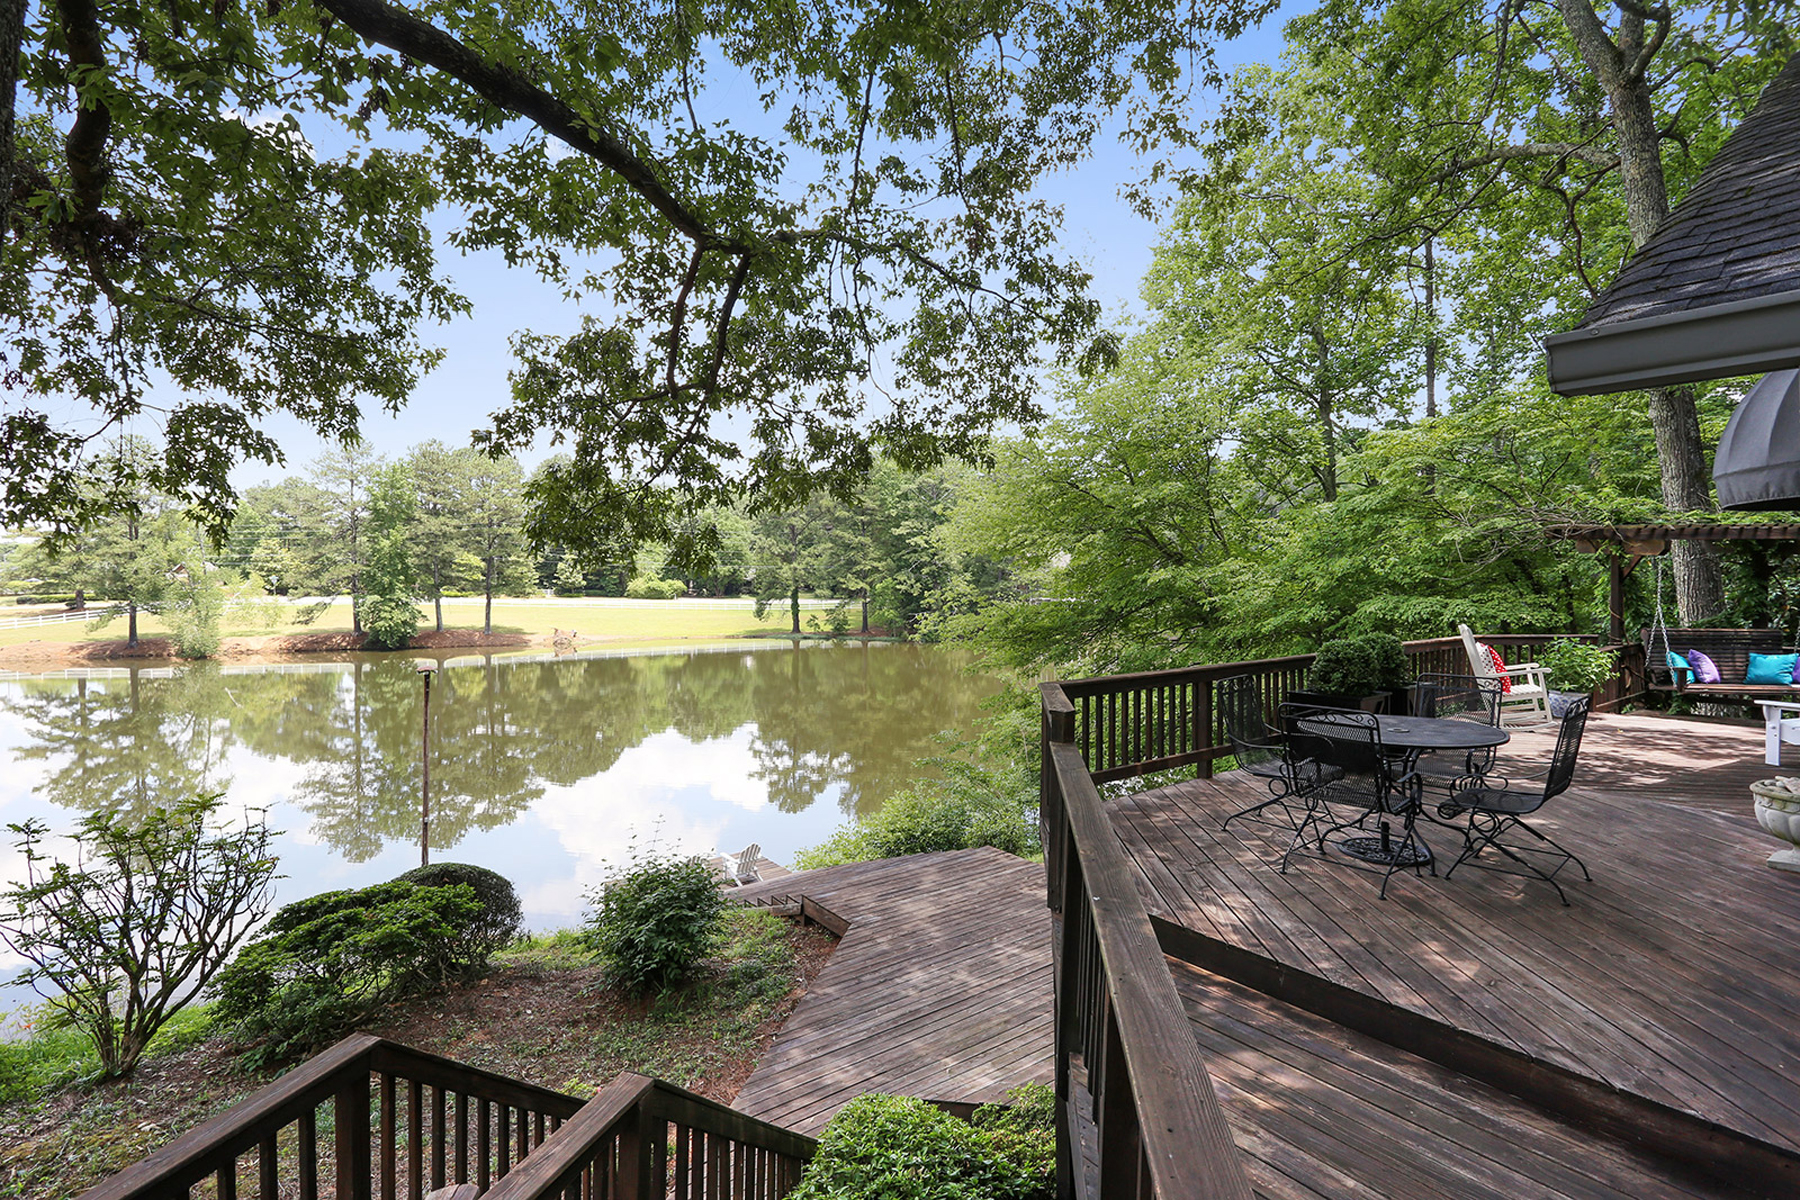 Additional photo for property listing at 12.8 Acres With House And Pond 4185 Old Stilesboro Road NW Kennesaw, Georgia 30152 Hoa Kỳ